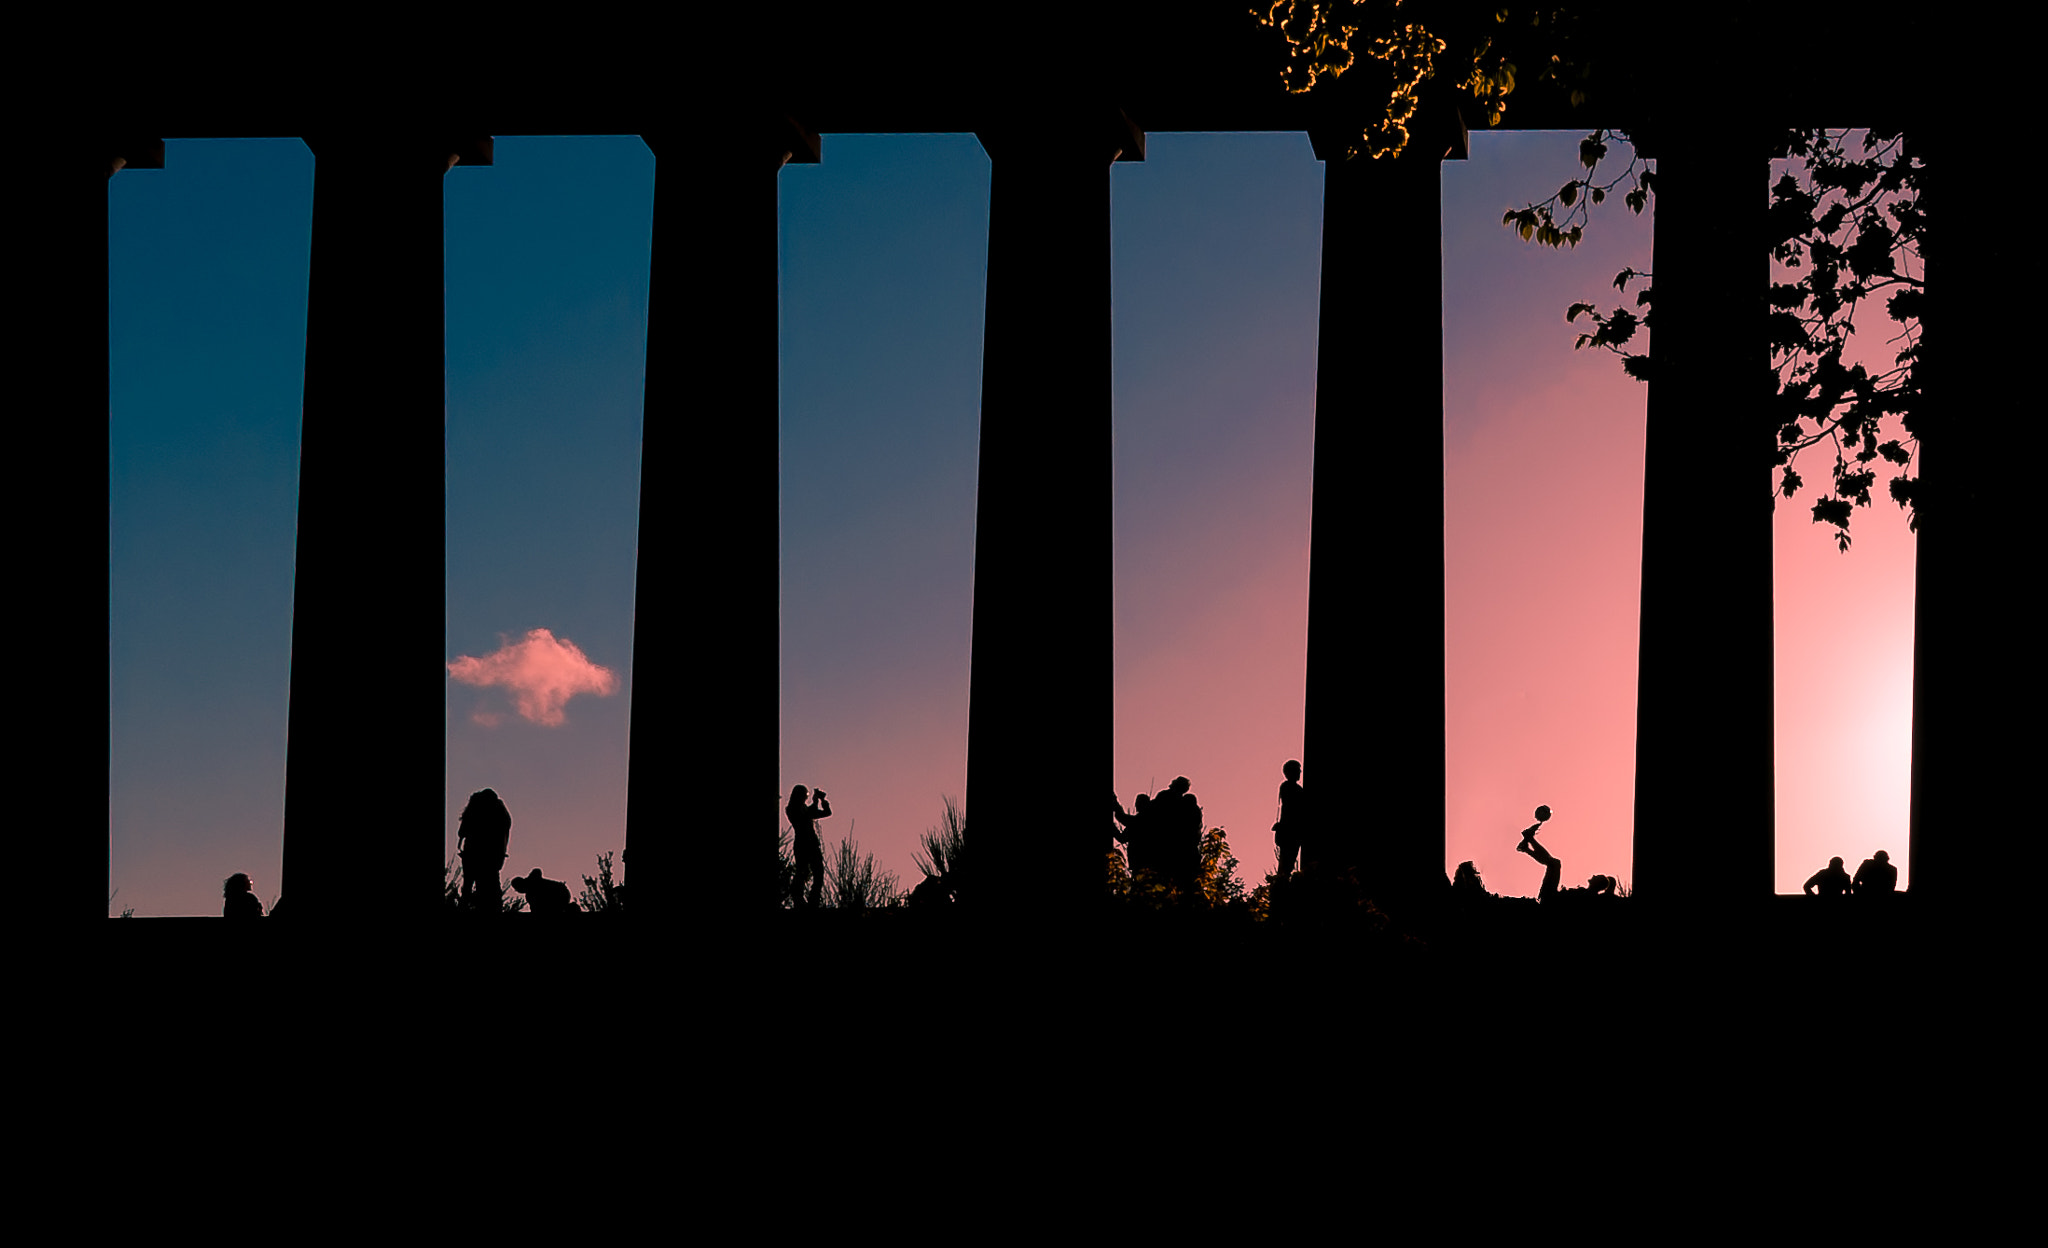 Photograph Silhouettes by Karsten May on 500px